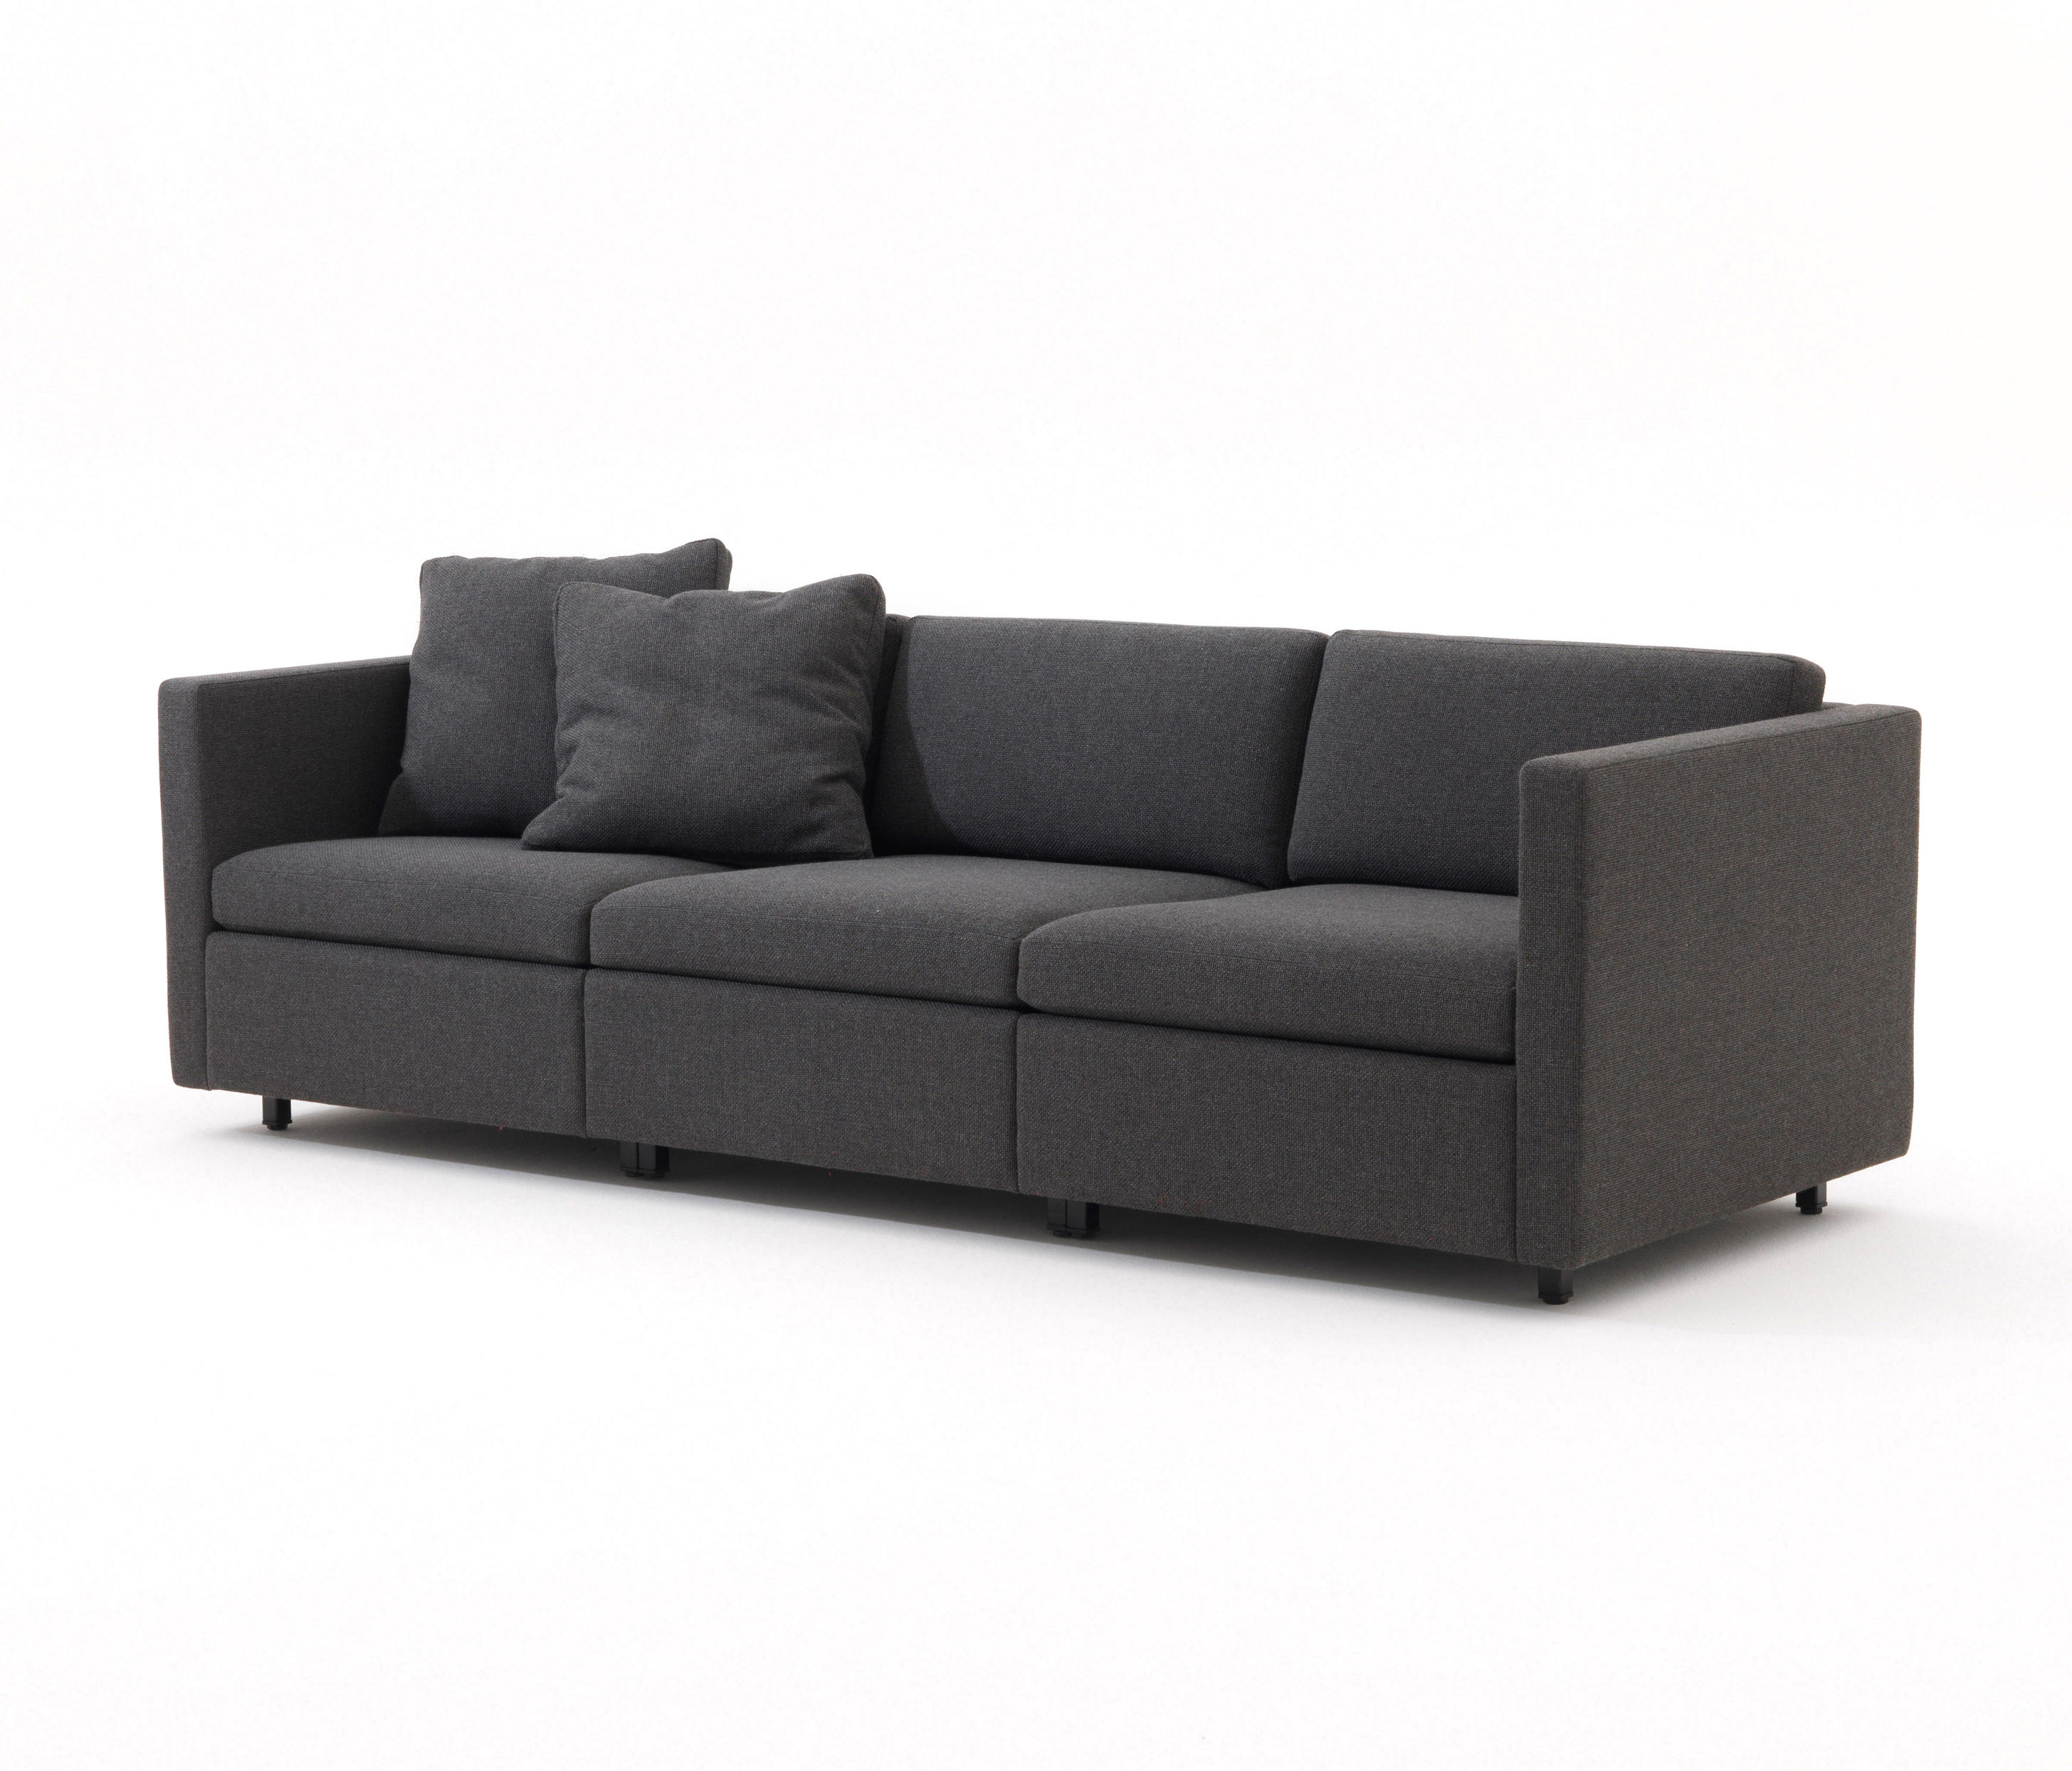 Superieur ... Pfister Lounge Seating By Knoll International | Sofas